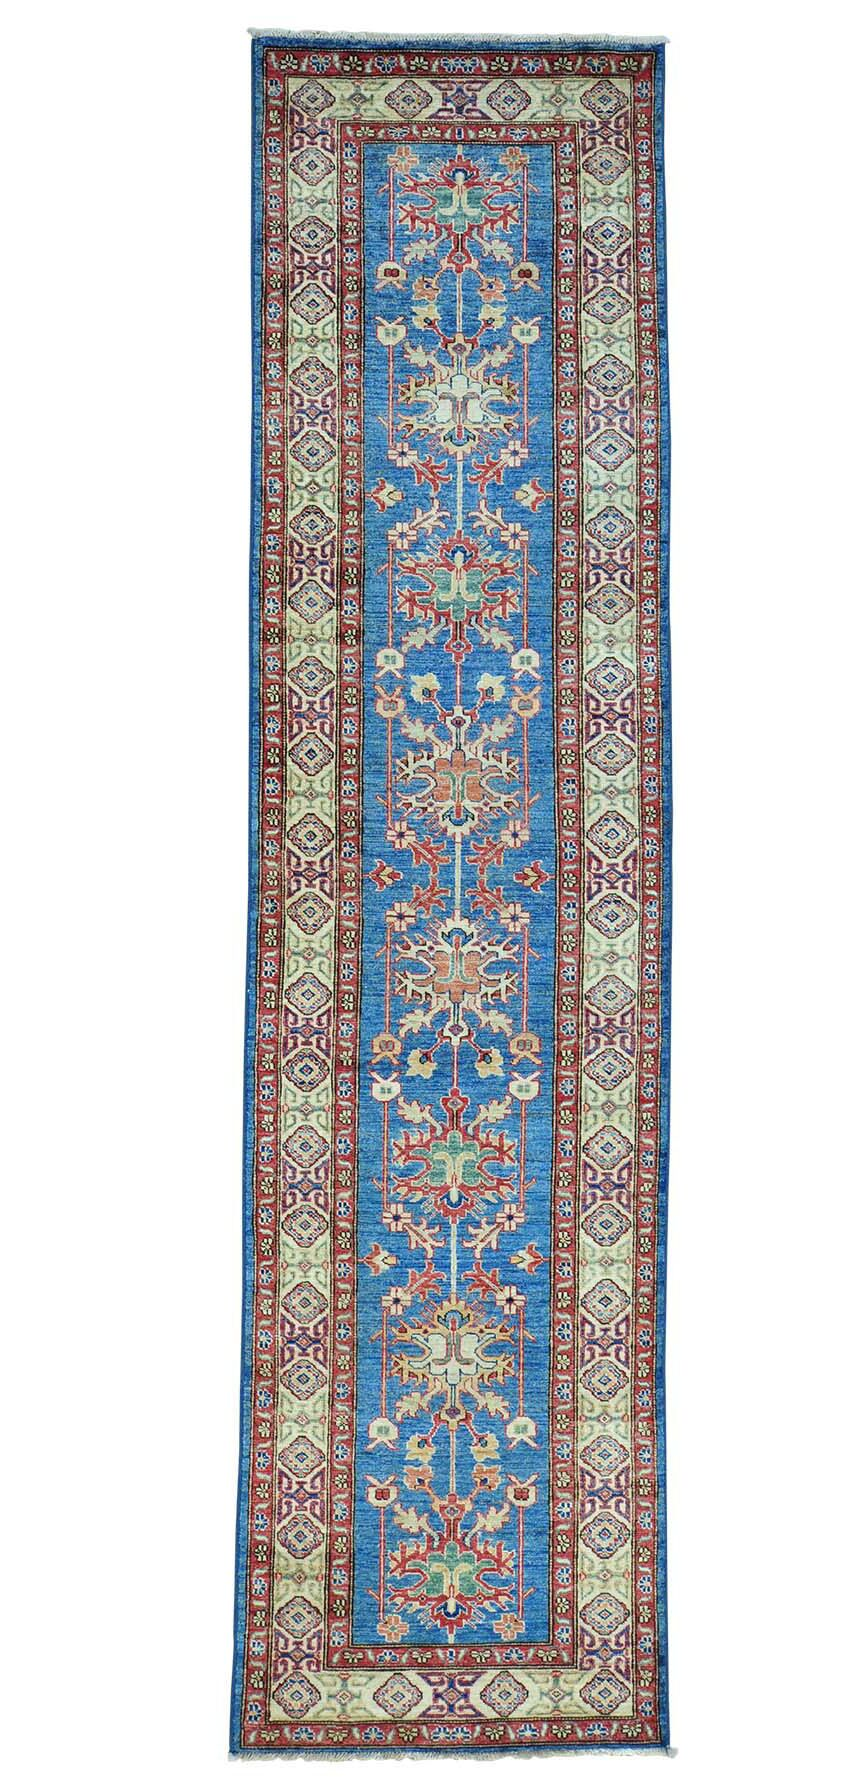 One-of-a-Kind Latimore Overdyed Worn Hand-Knotted Sku Blue/Red Area Rug